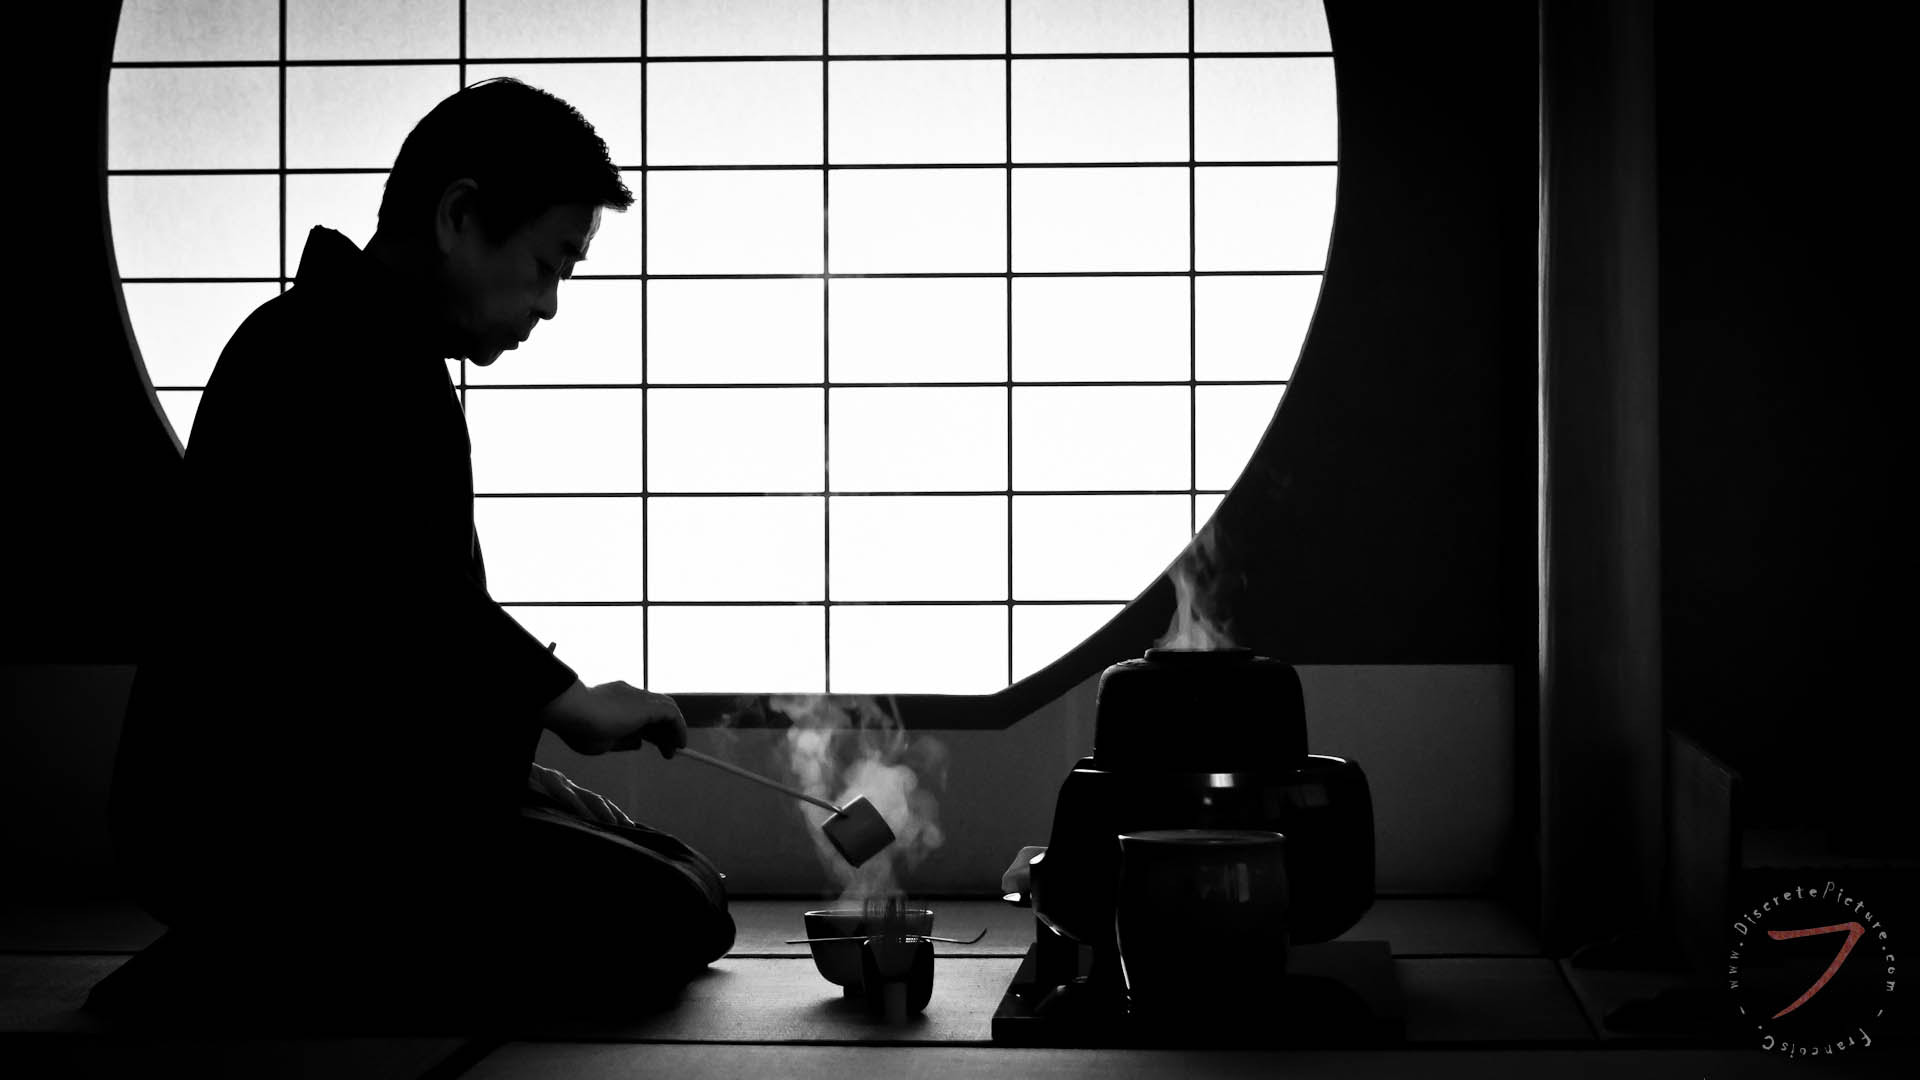 Photograph Tea ceremony - Muenchen tee hause by francois cad on 500px